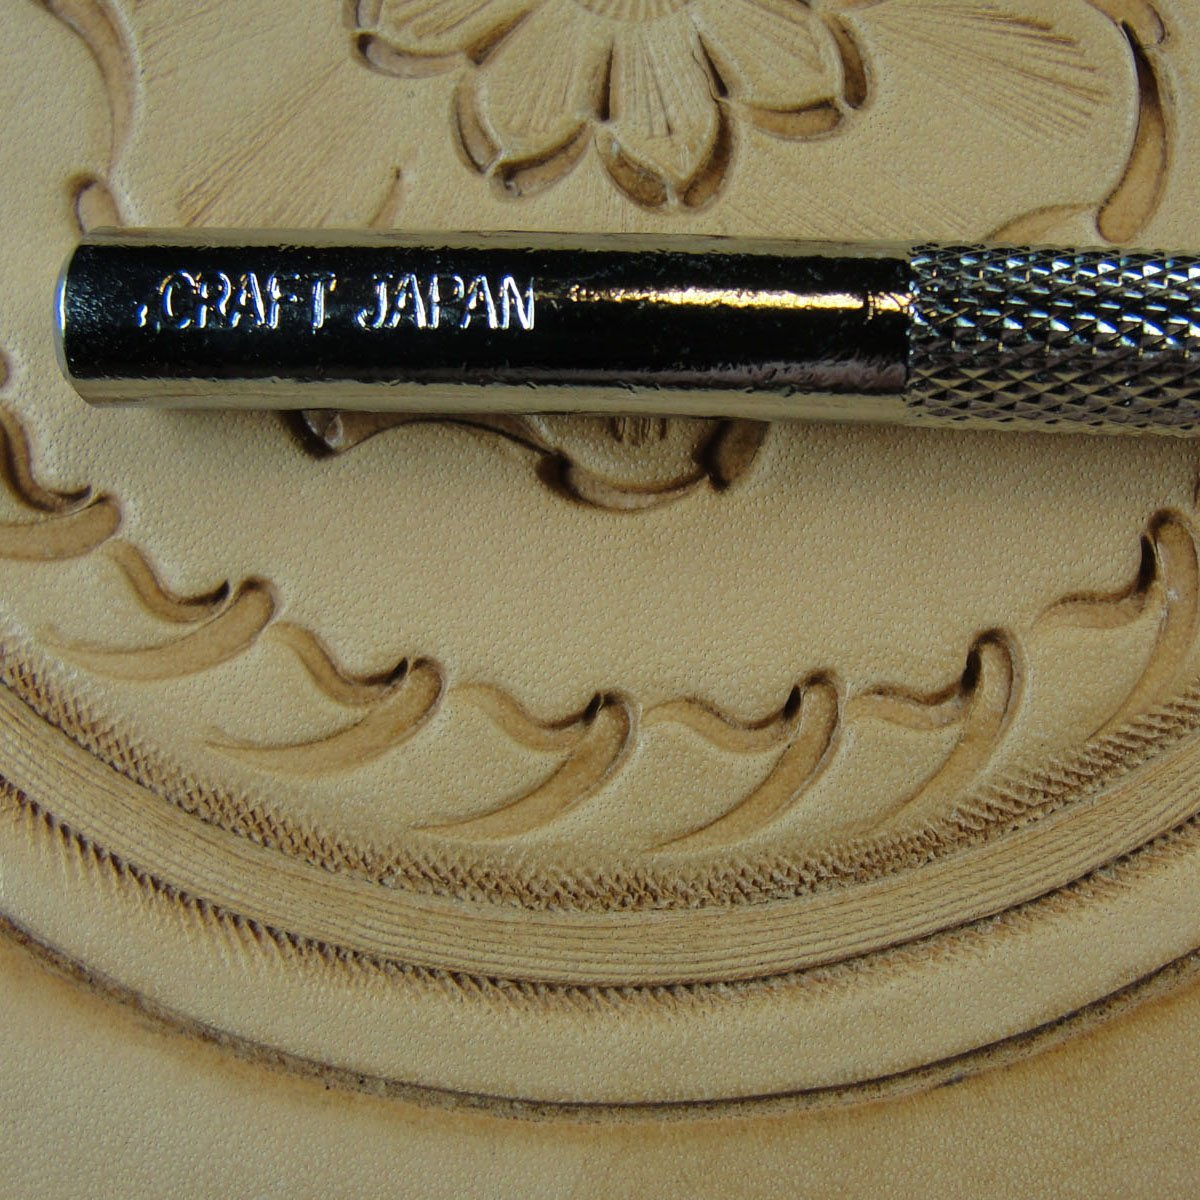 Steel Craft Japan Leather Tool #F995 Smooth Matting Background Stamp